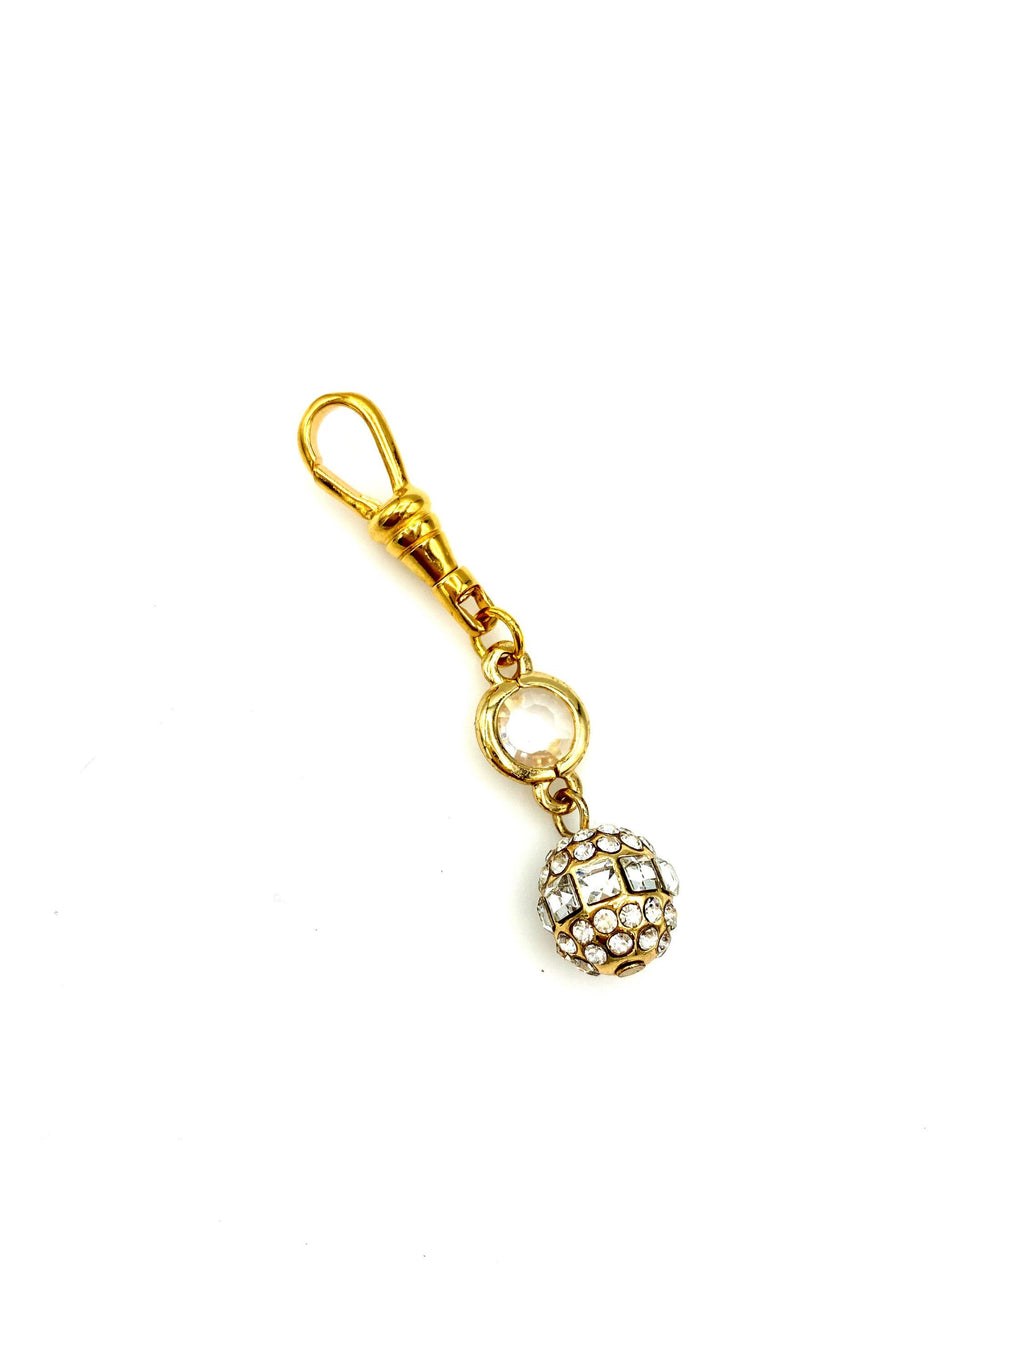 Gold Crystal & Rhinestone Victorian Revival Charm Swivel Fob Jewelry